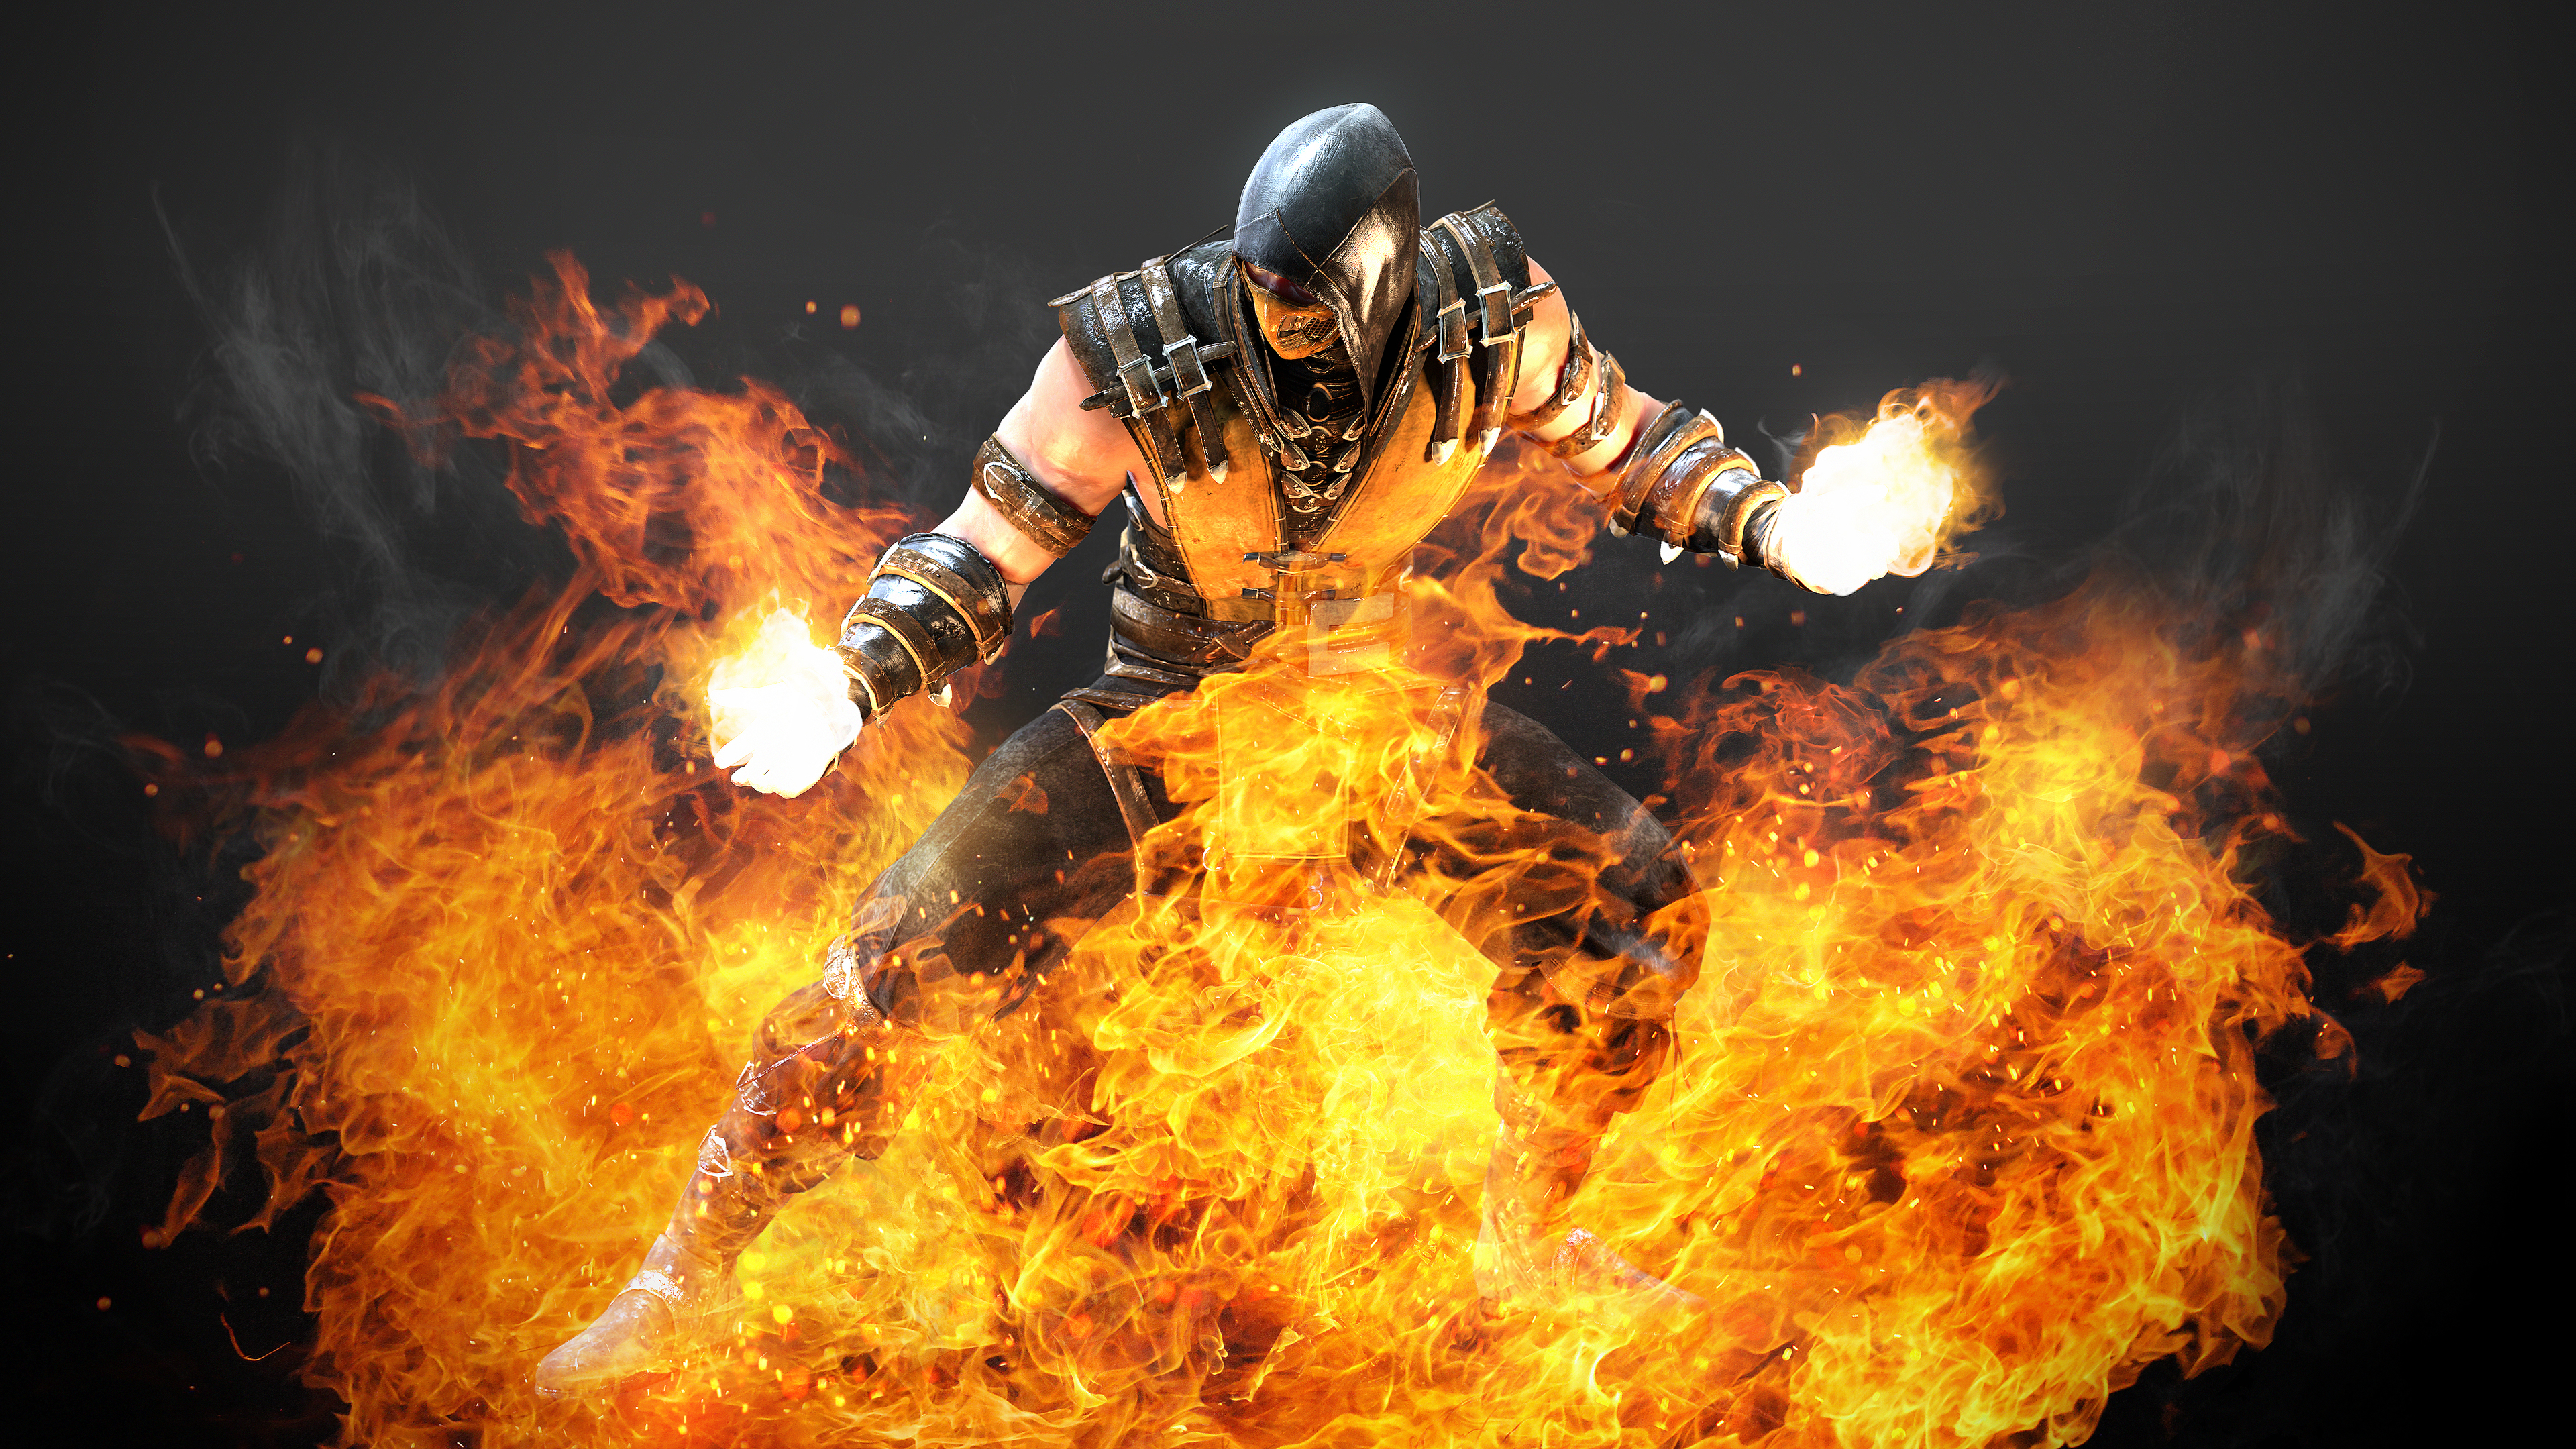 Wallpaper 4k Hellfire Scorpion Mortal Kombat X 5k Artwork 4k